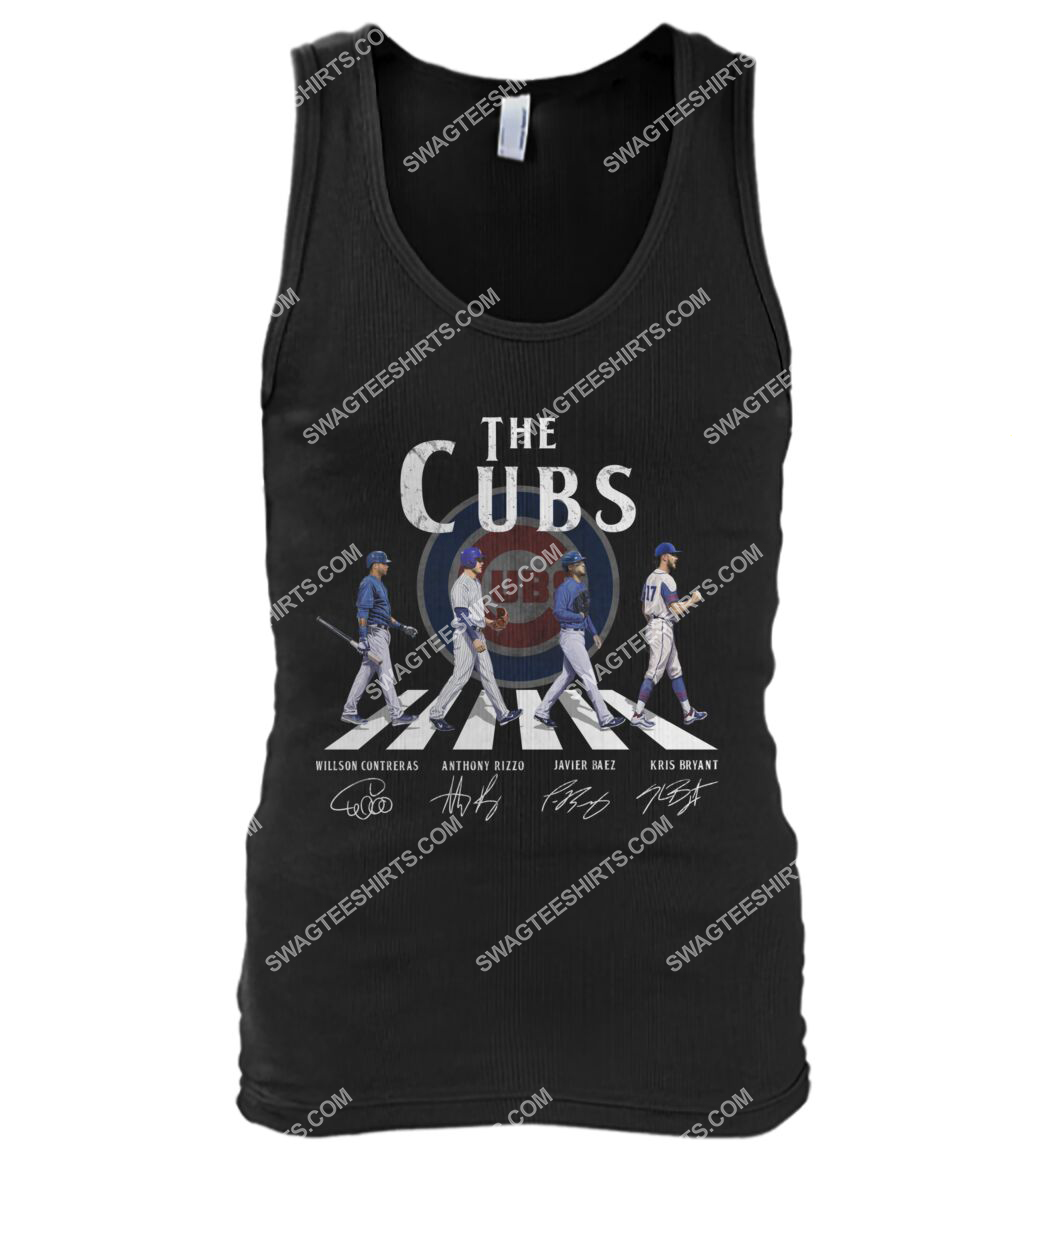 the chicago cubs signatures walking abbey road tank top 1